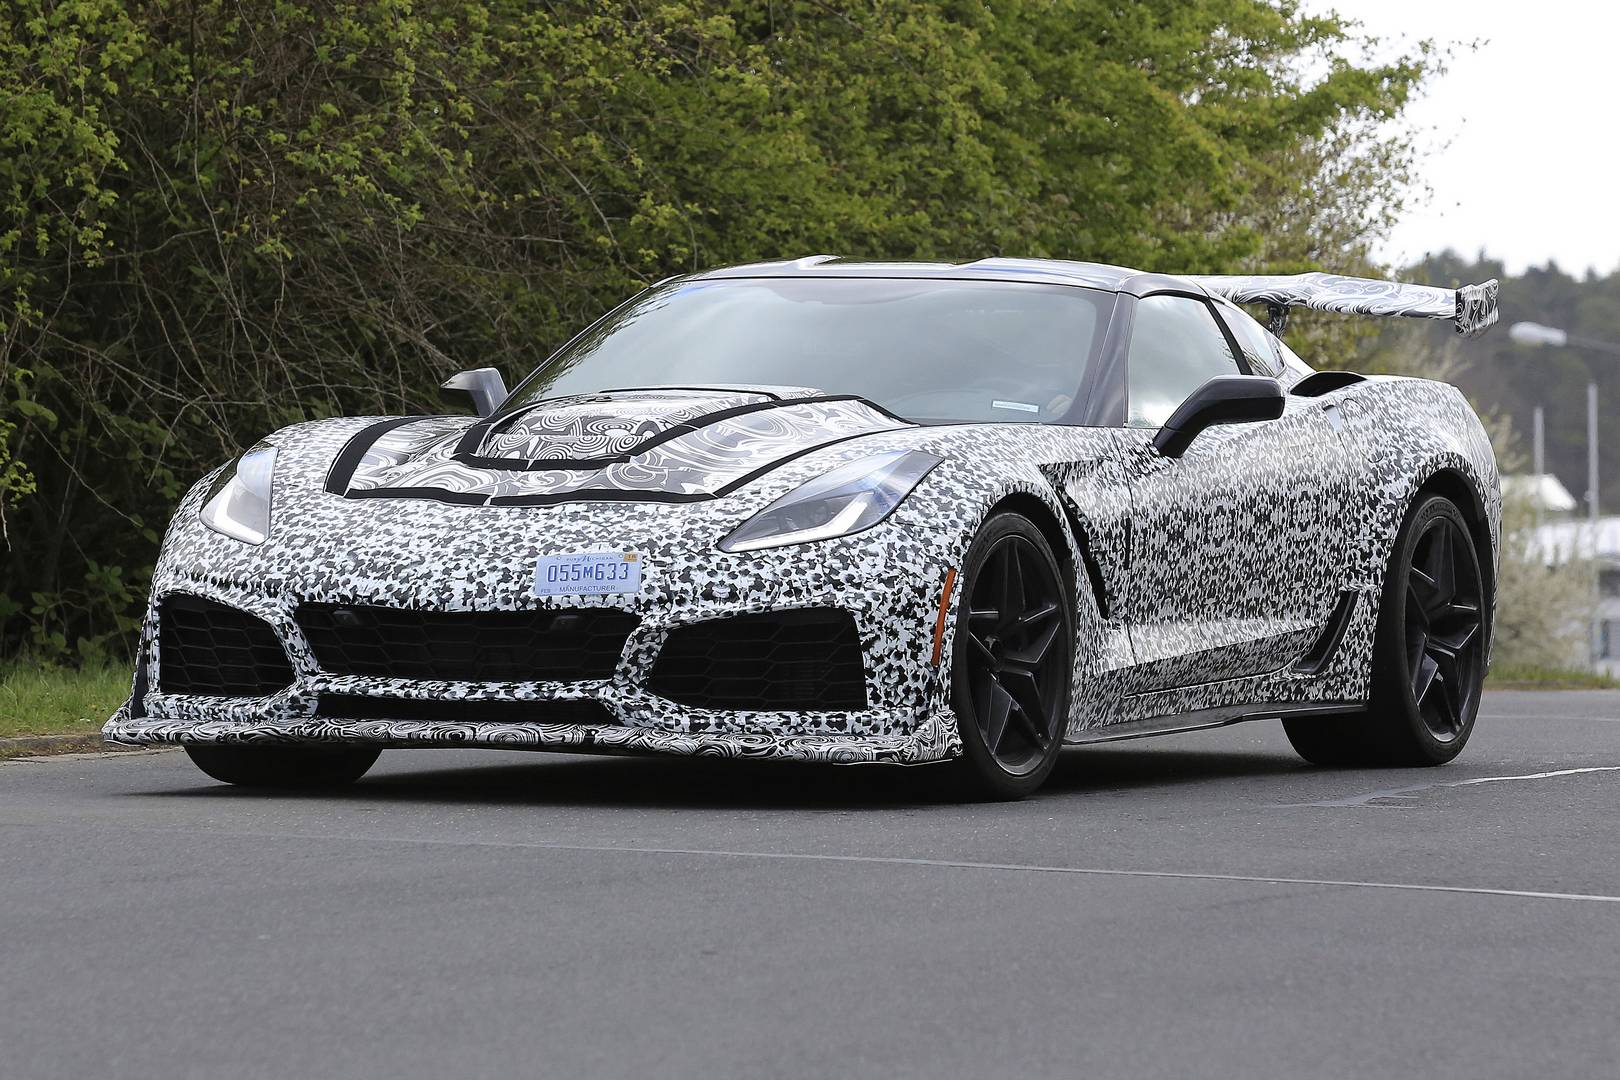 corvette zr1 chevrolet spy newest shots horsepower date specs gtspirit zora nurburgring been cardissection featured release